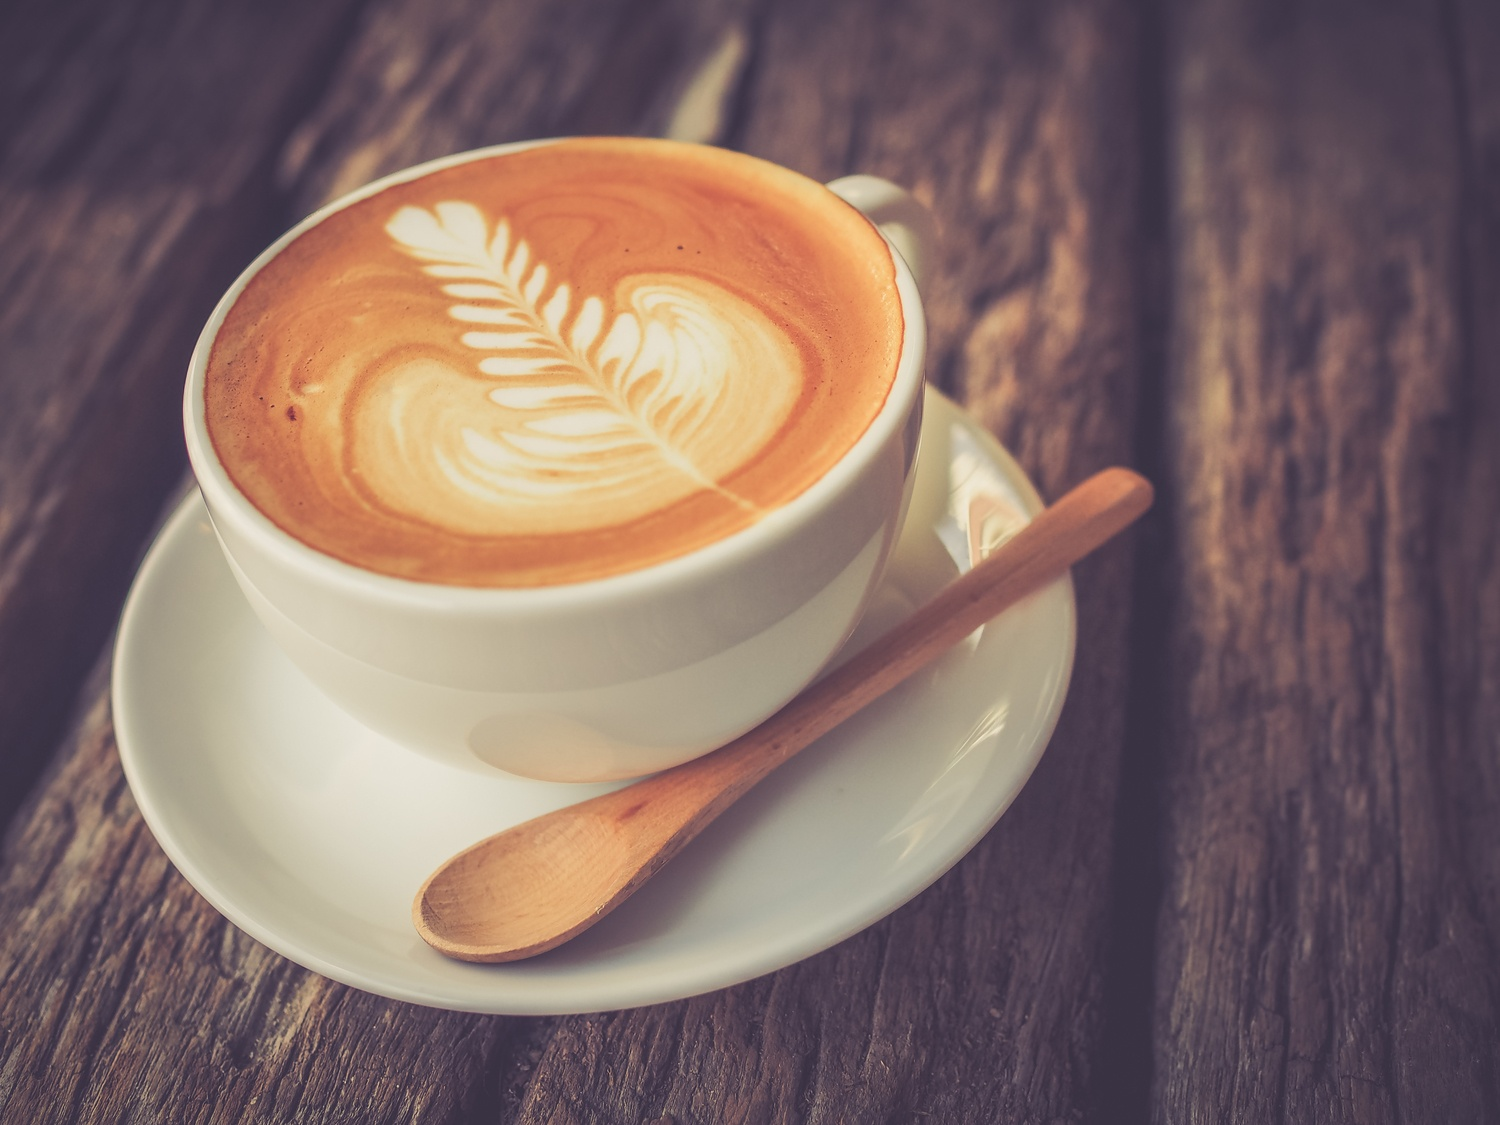 Coffee Latte Art Jogja 14 Things Only Coffee Drinkers Would Understand